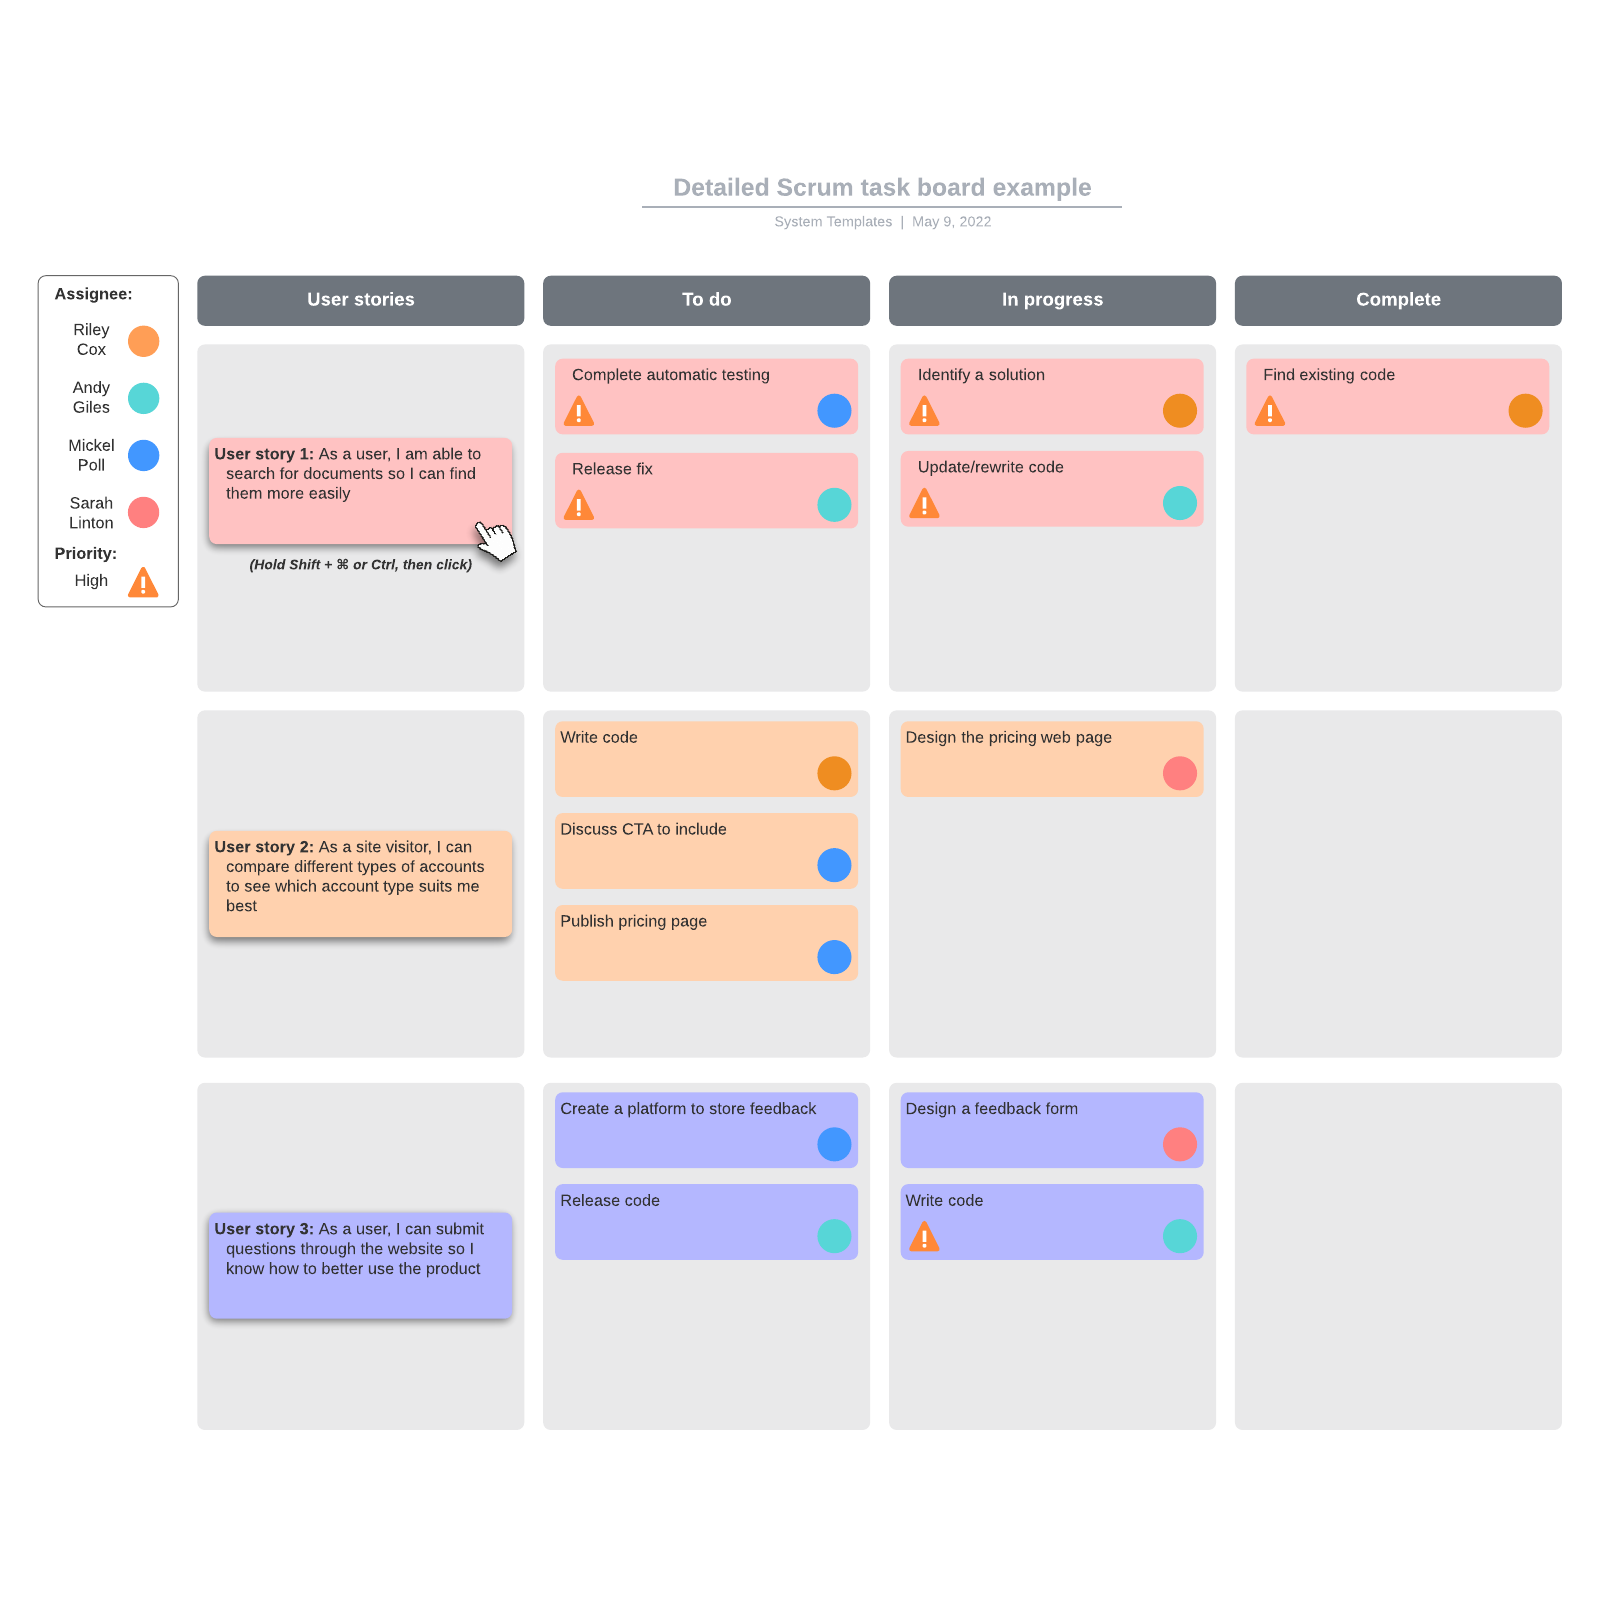 Detailed Scrum task board example